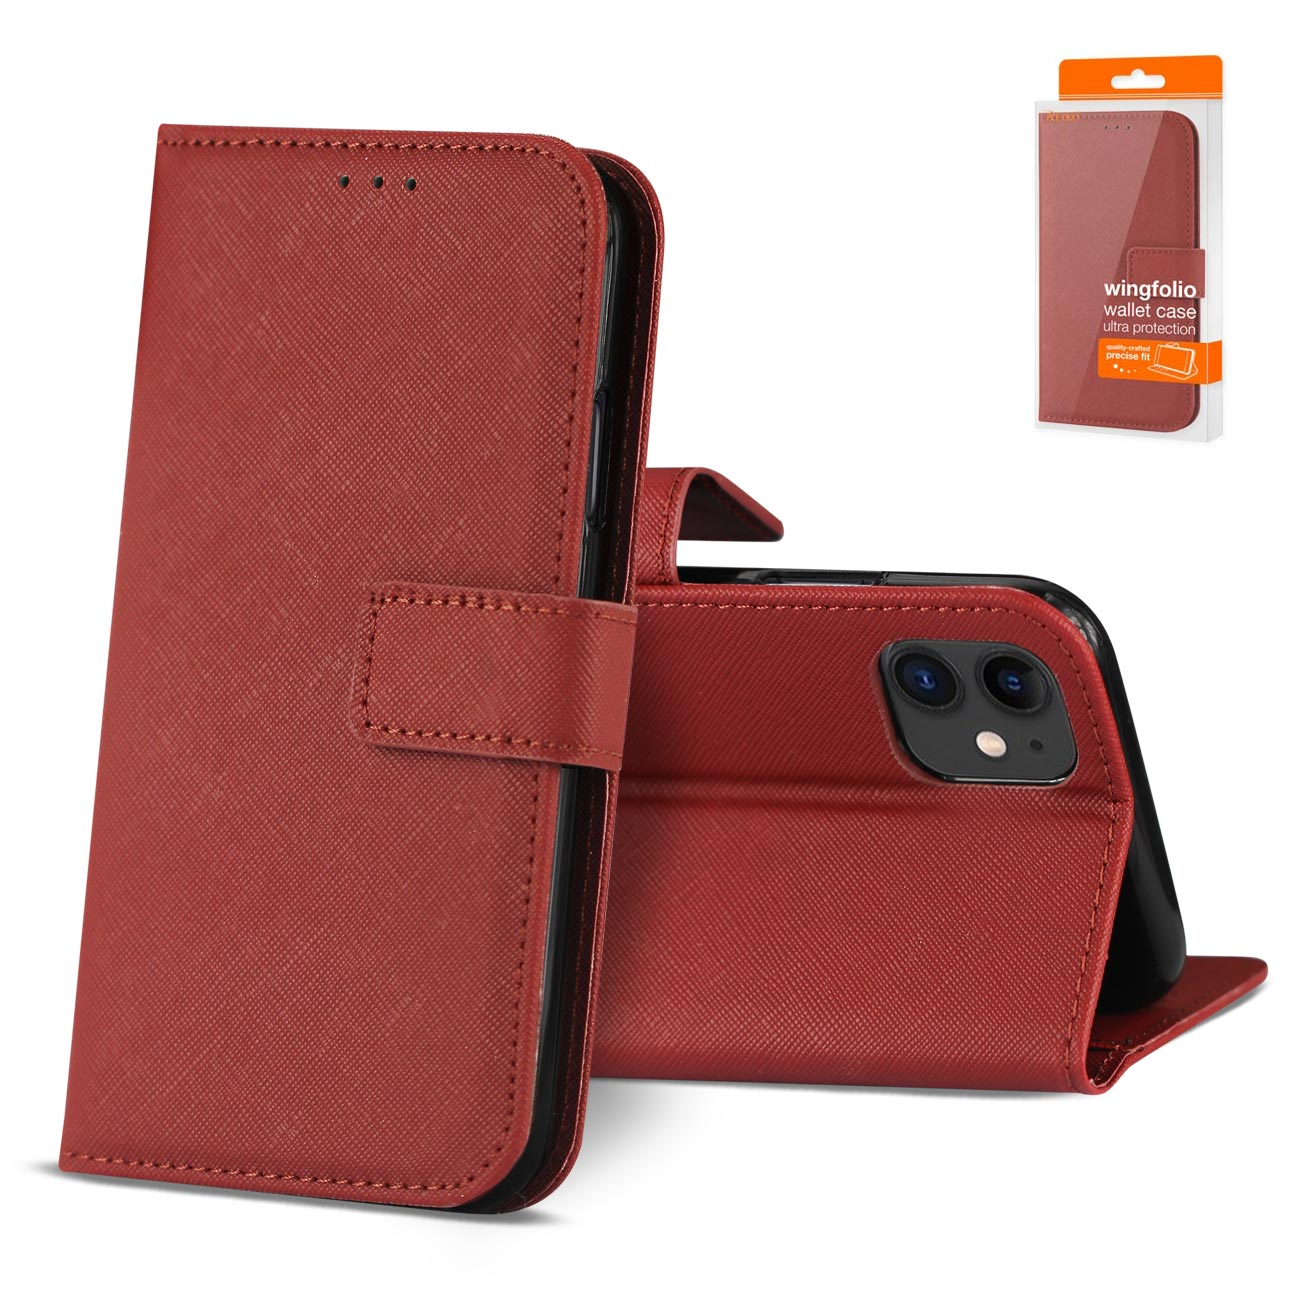 Reiko APPLE IPHONE 11 3-In-1 Wallet Case In RED